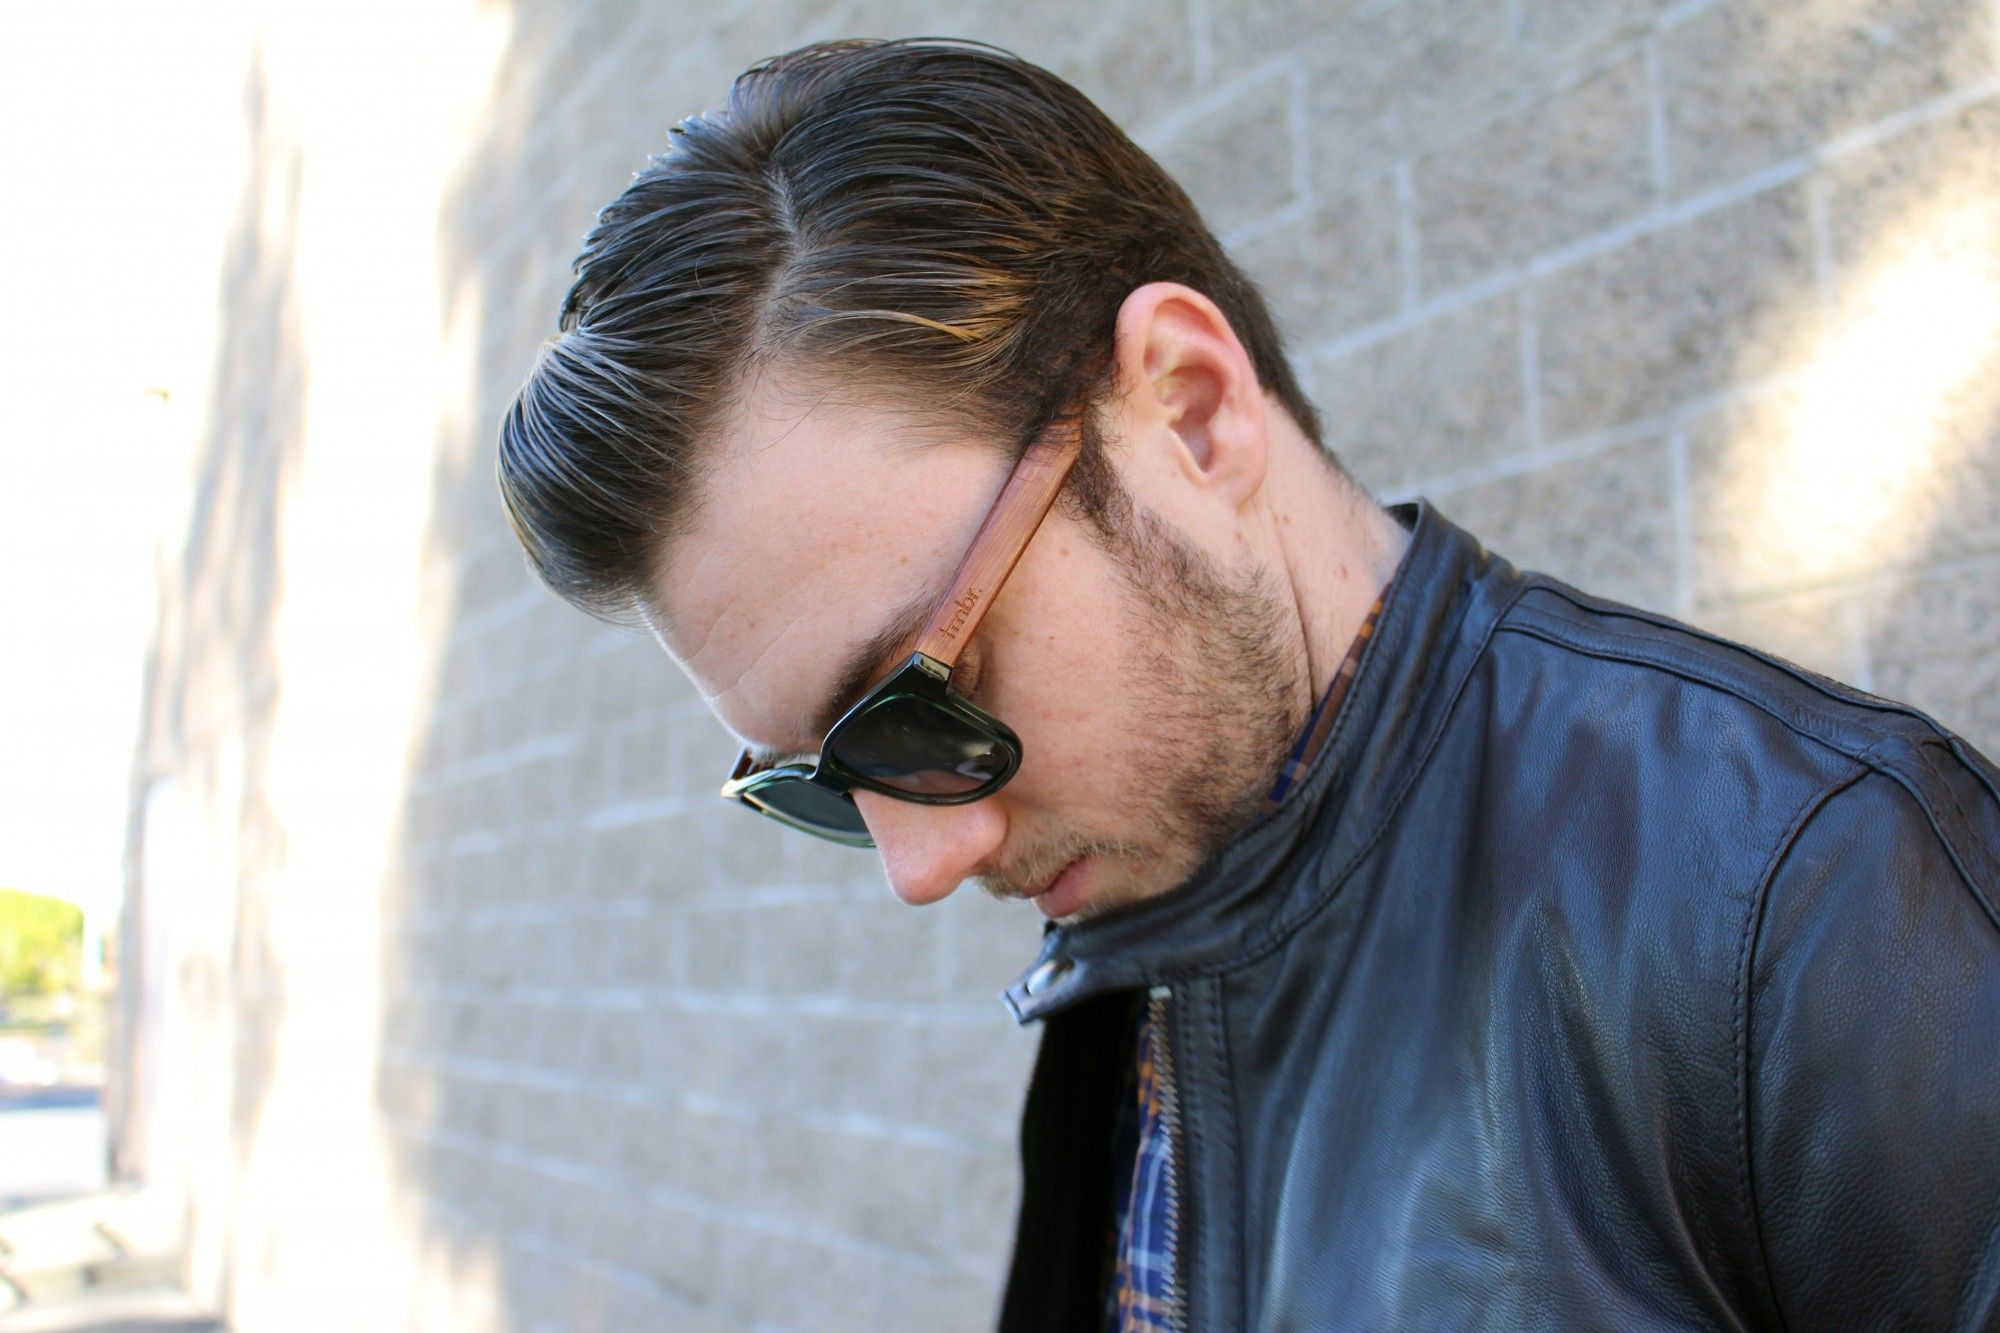 ASOS Leather Jacket and tmbr sunglasses